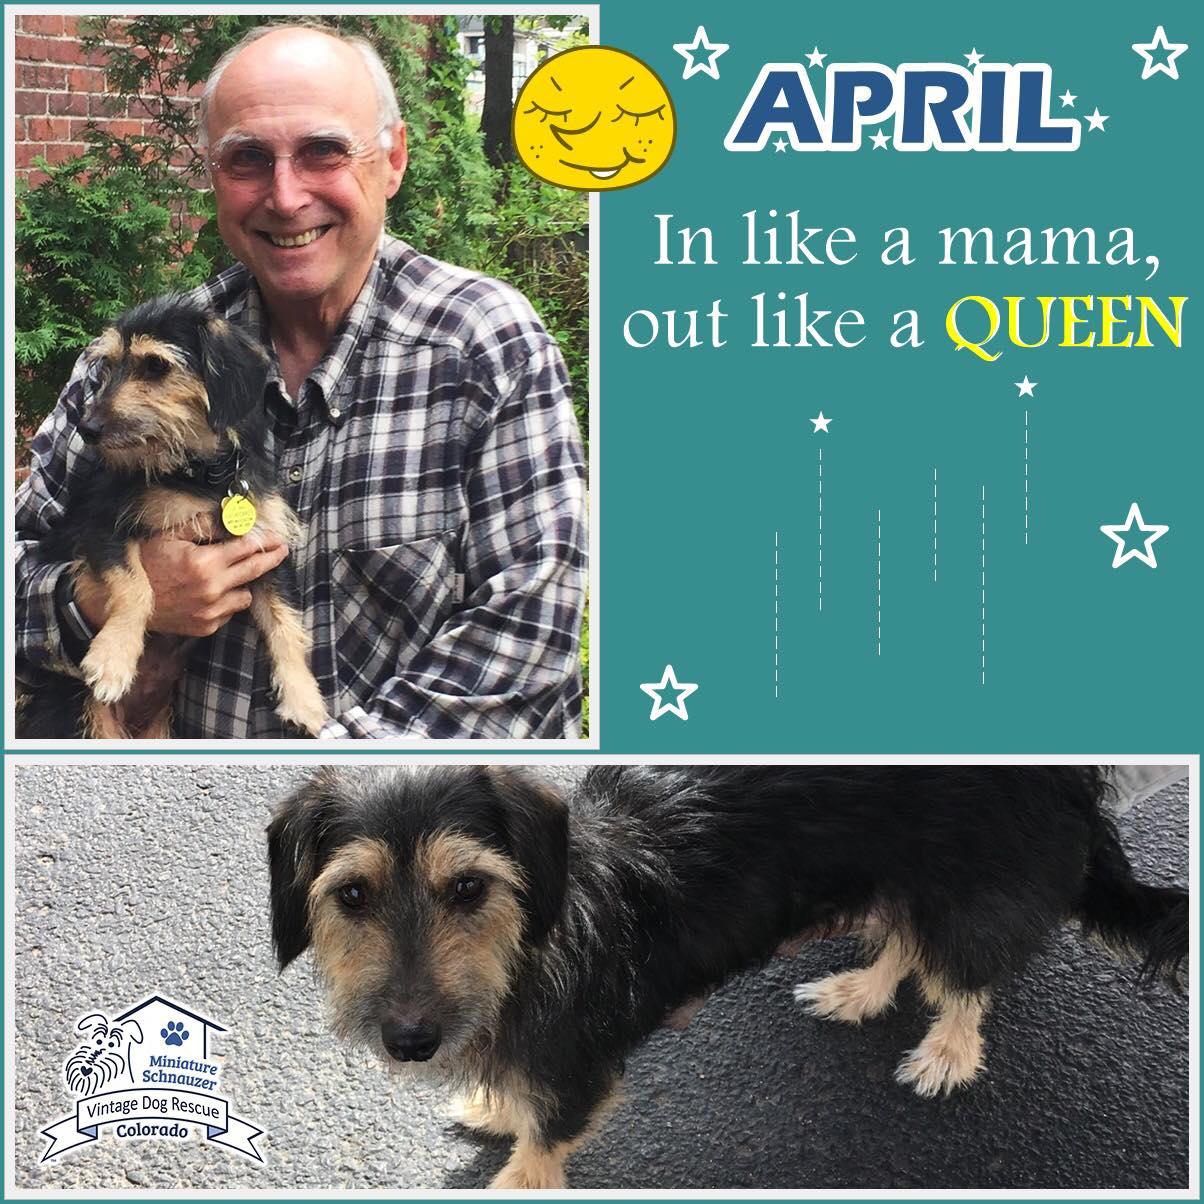 April was adopted!